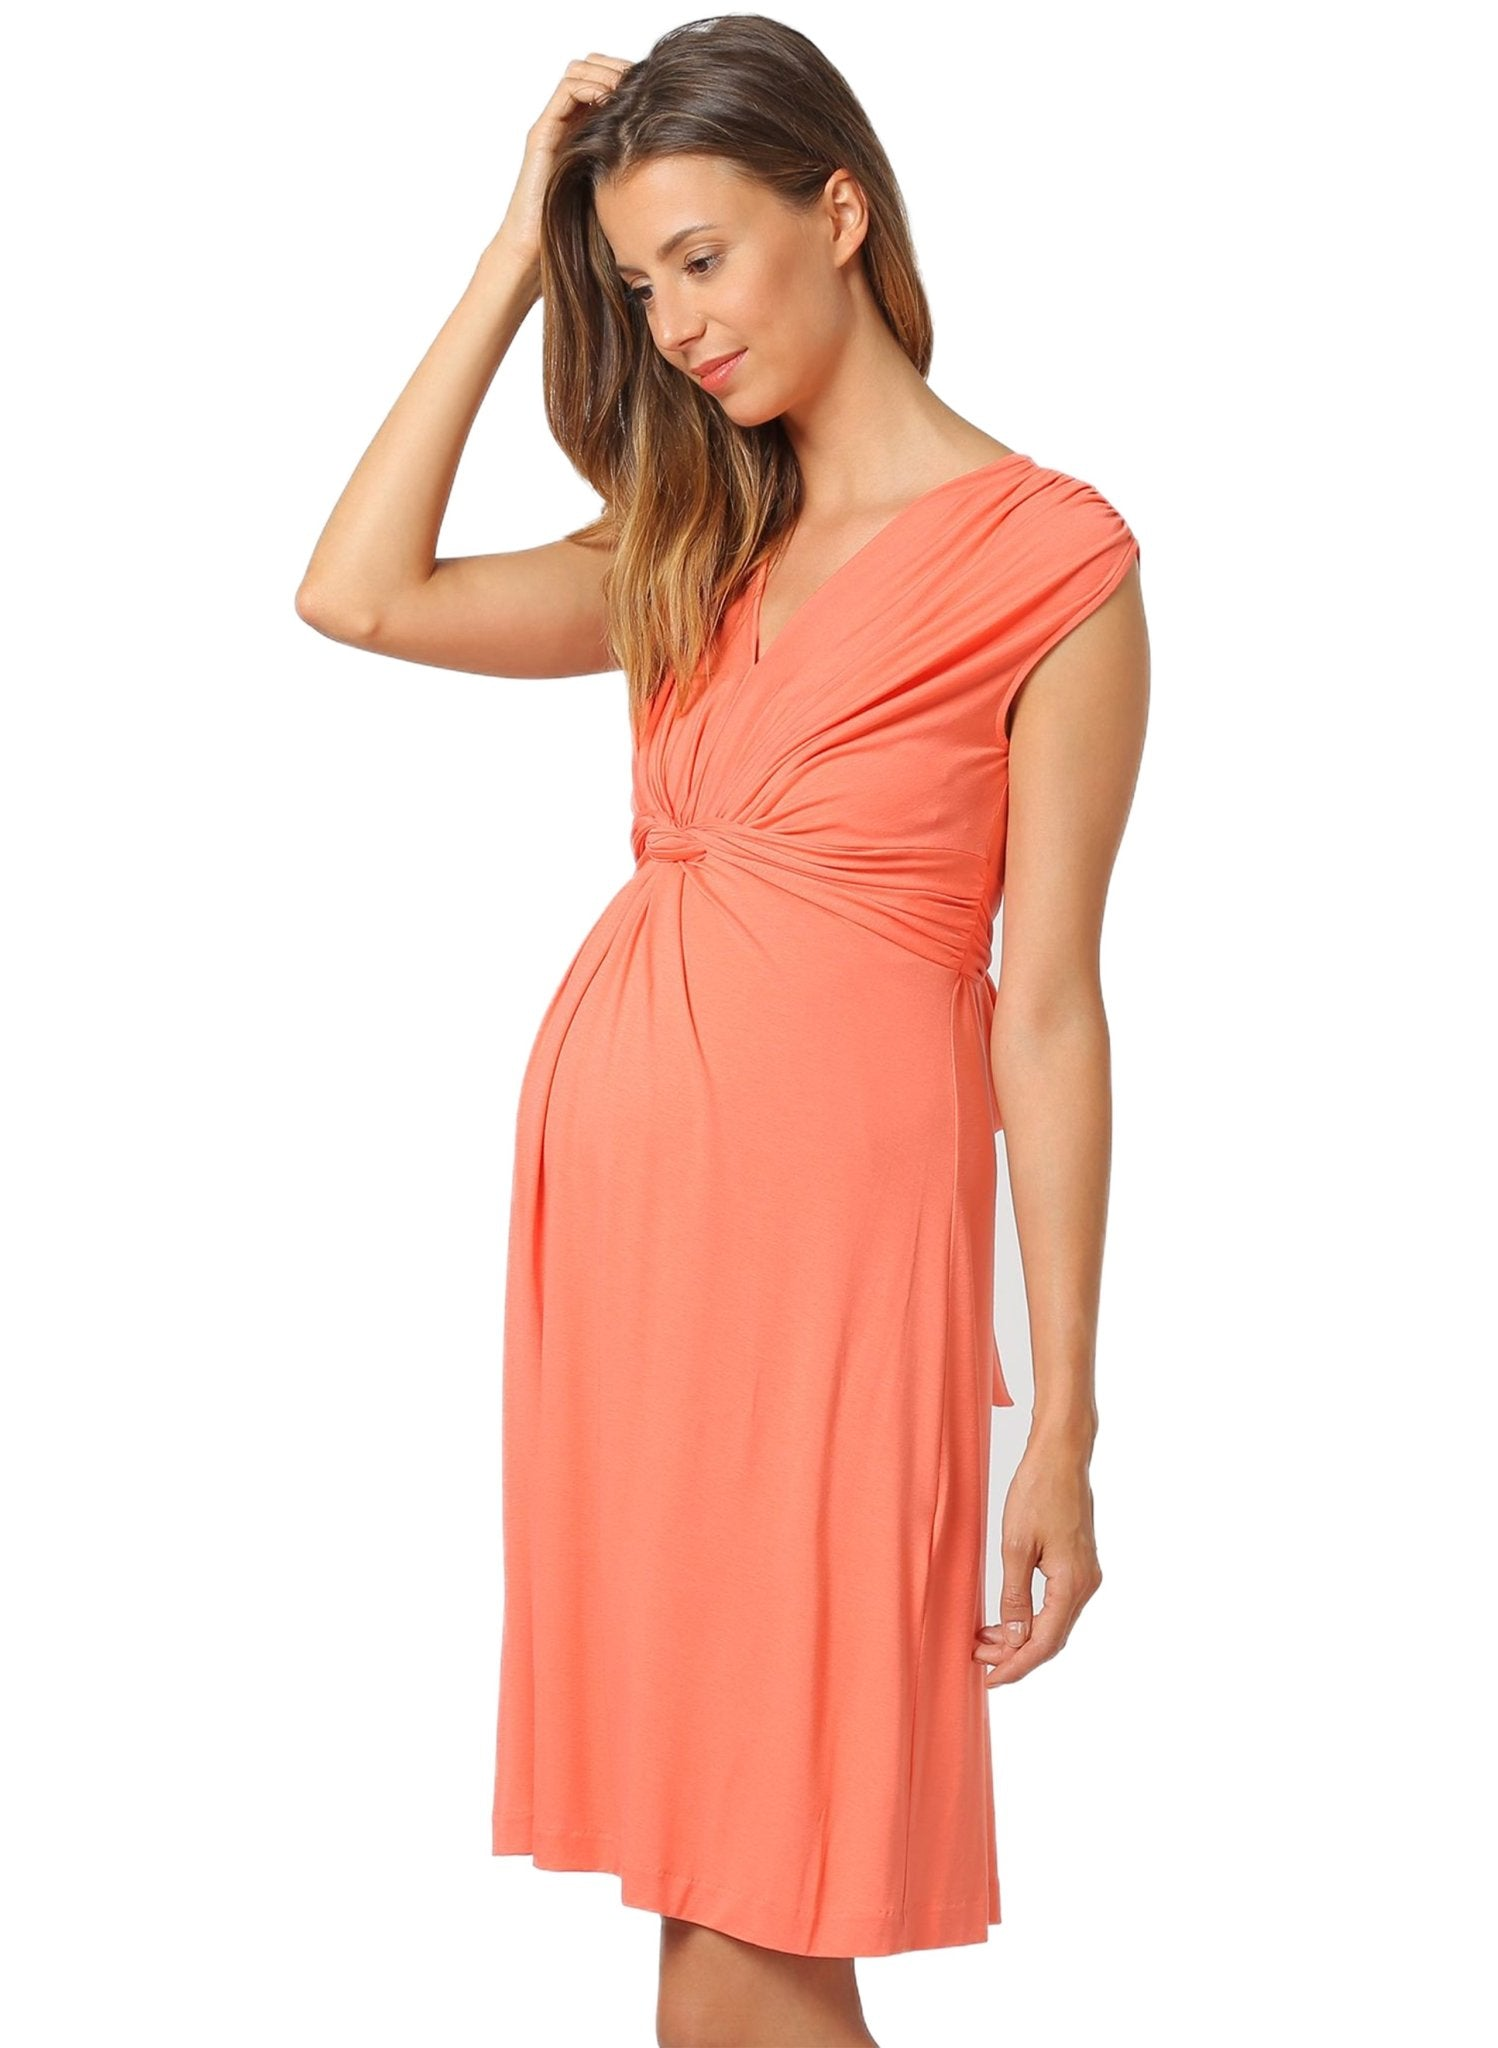 Papaver Maternity Dress - Coral - Mums and Bumps